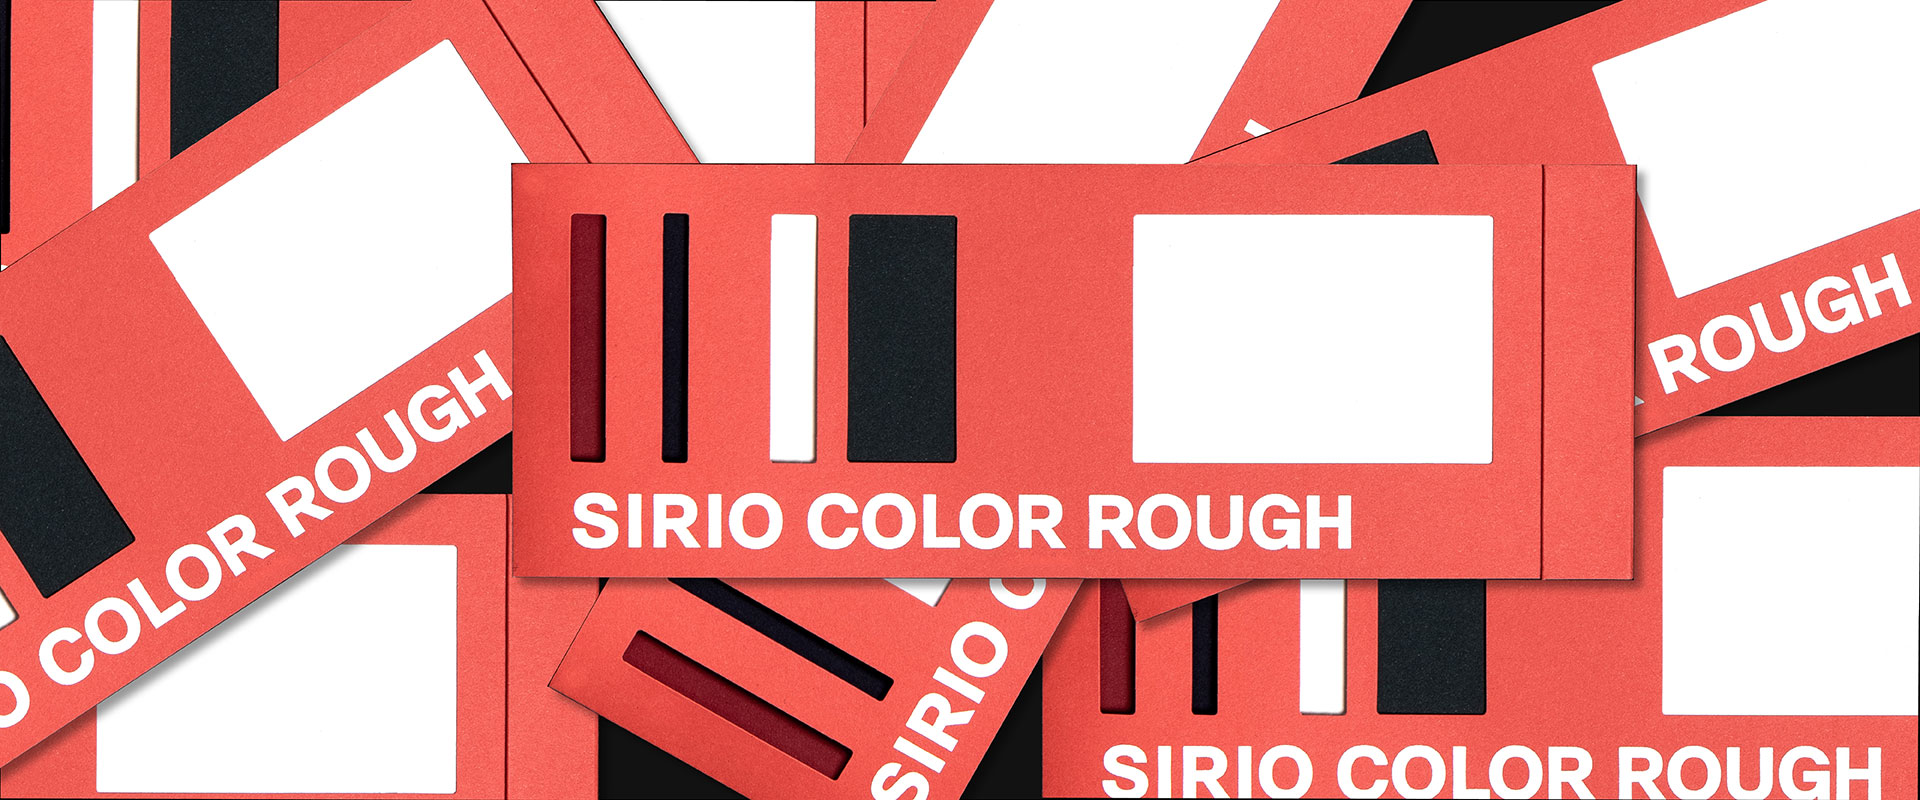 SIRIO COLOR ROUGH